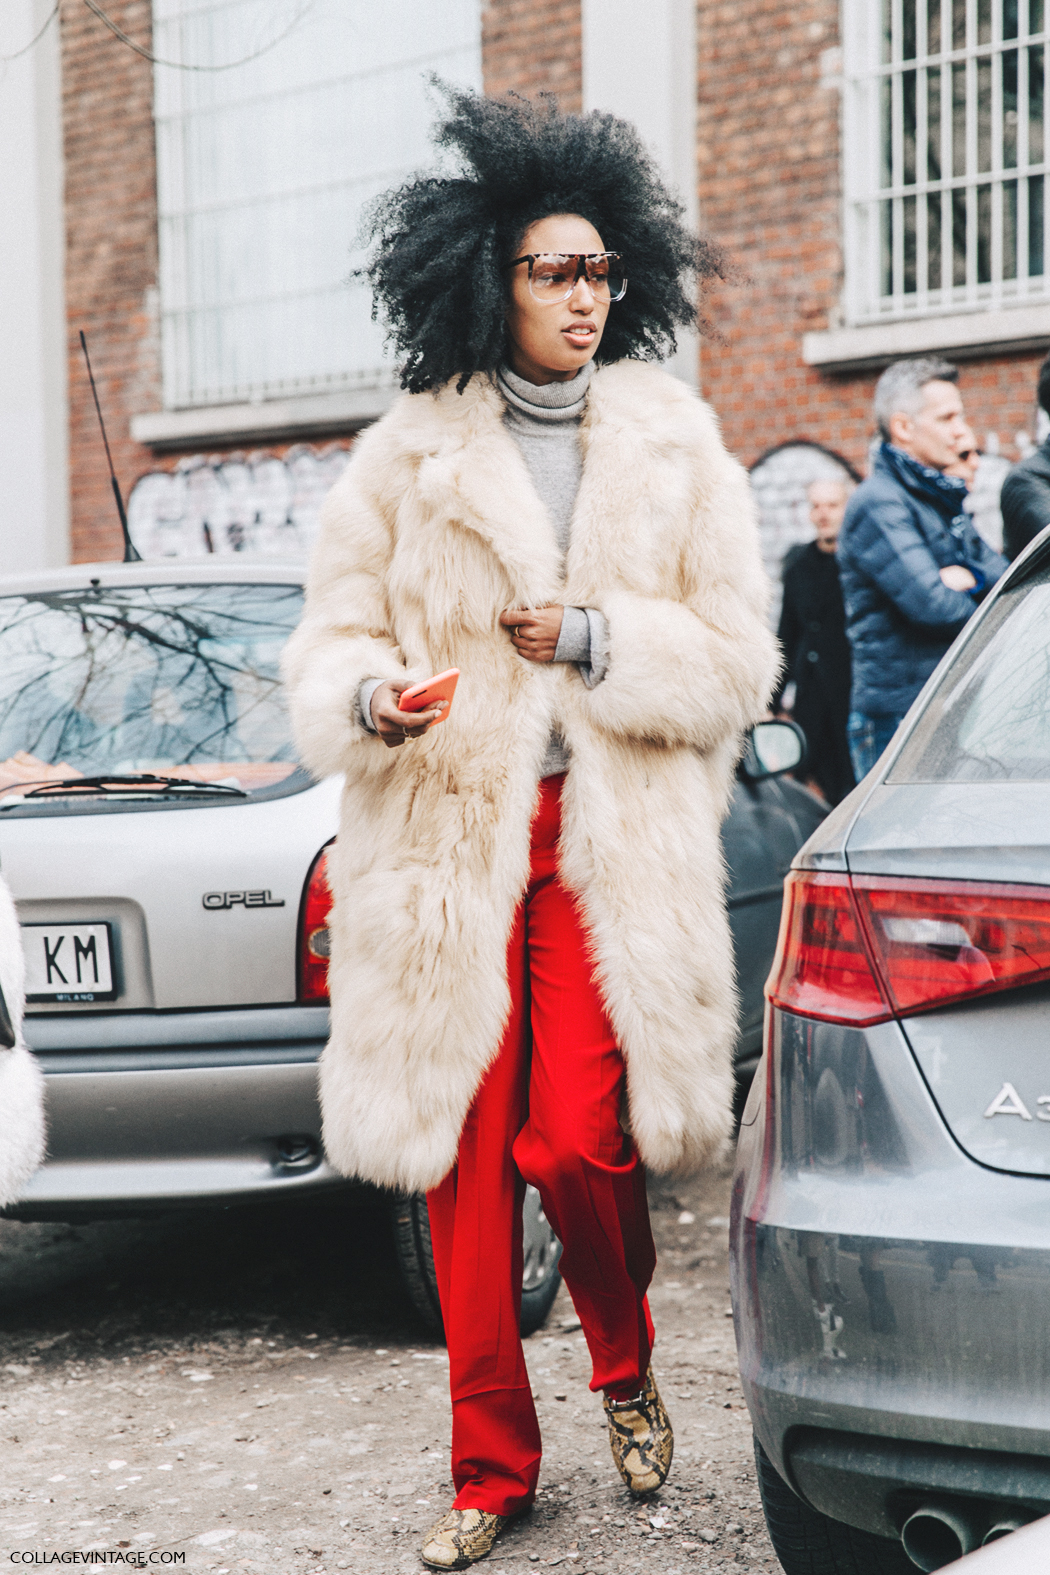 Milan_Fashion_Week_Fall_16-MFW-Street_Style-Collage_Vintage-Julia_Sarr_Jamois-Red_Trousers-Fur_Coat-Turtleneck_Sweater-1